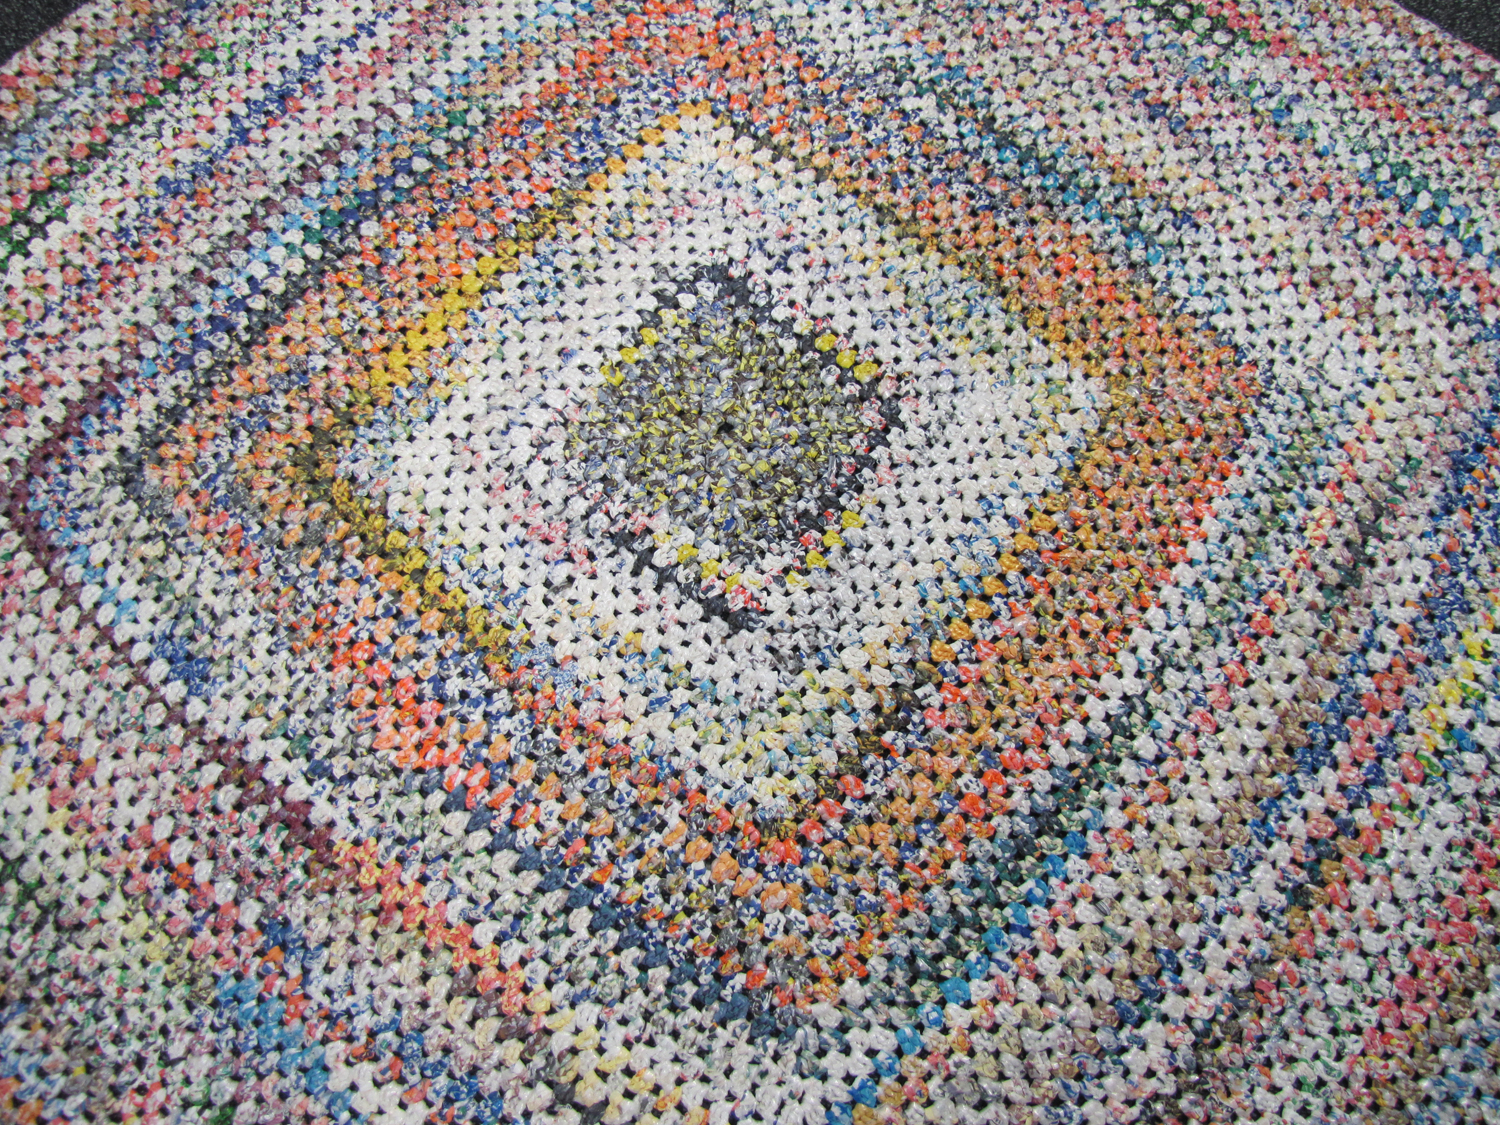 photographs of outdoor rug crocheted from plastic bags made by